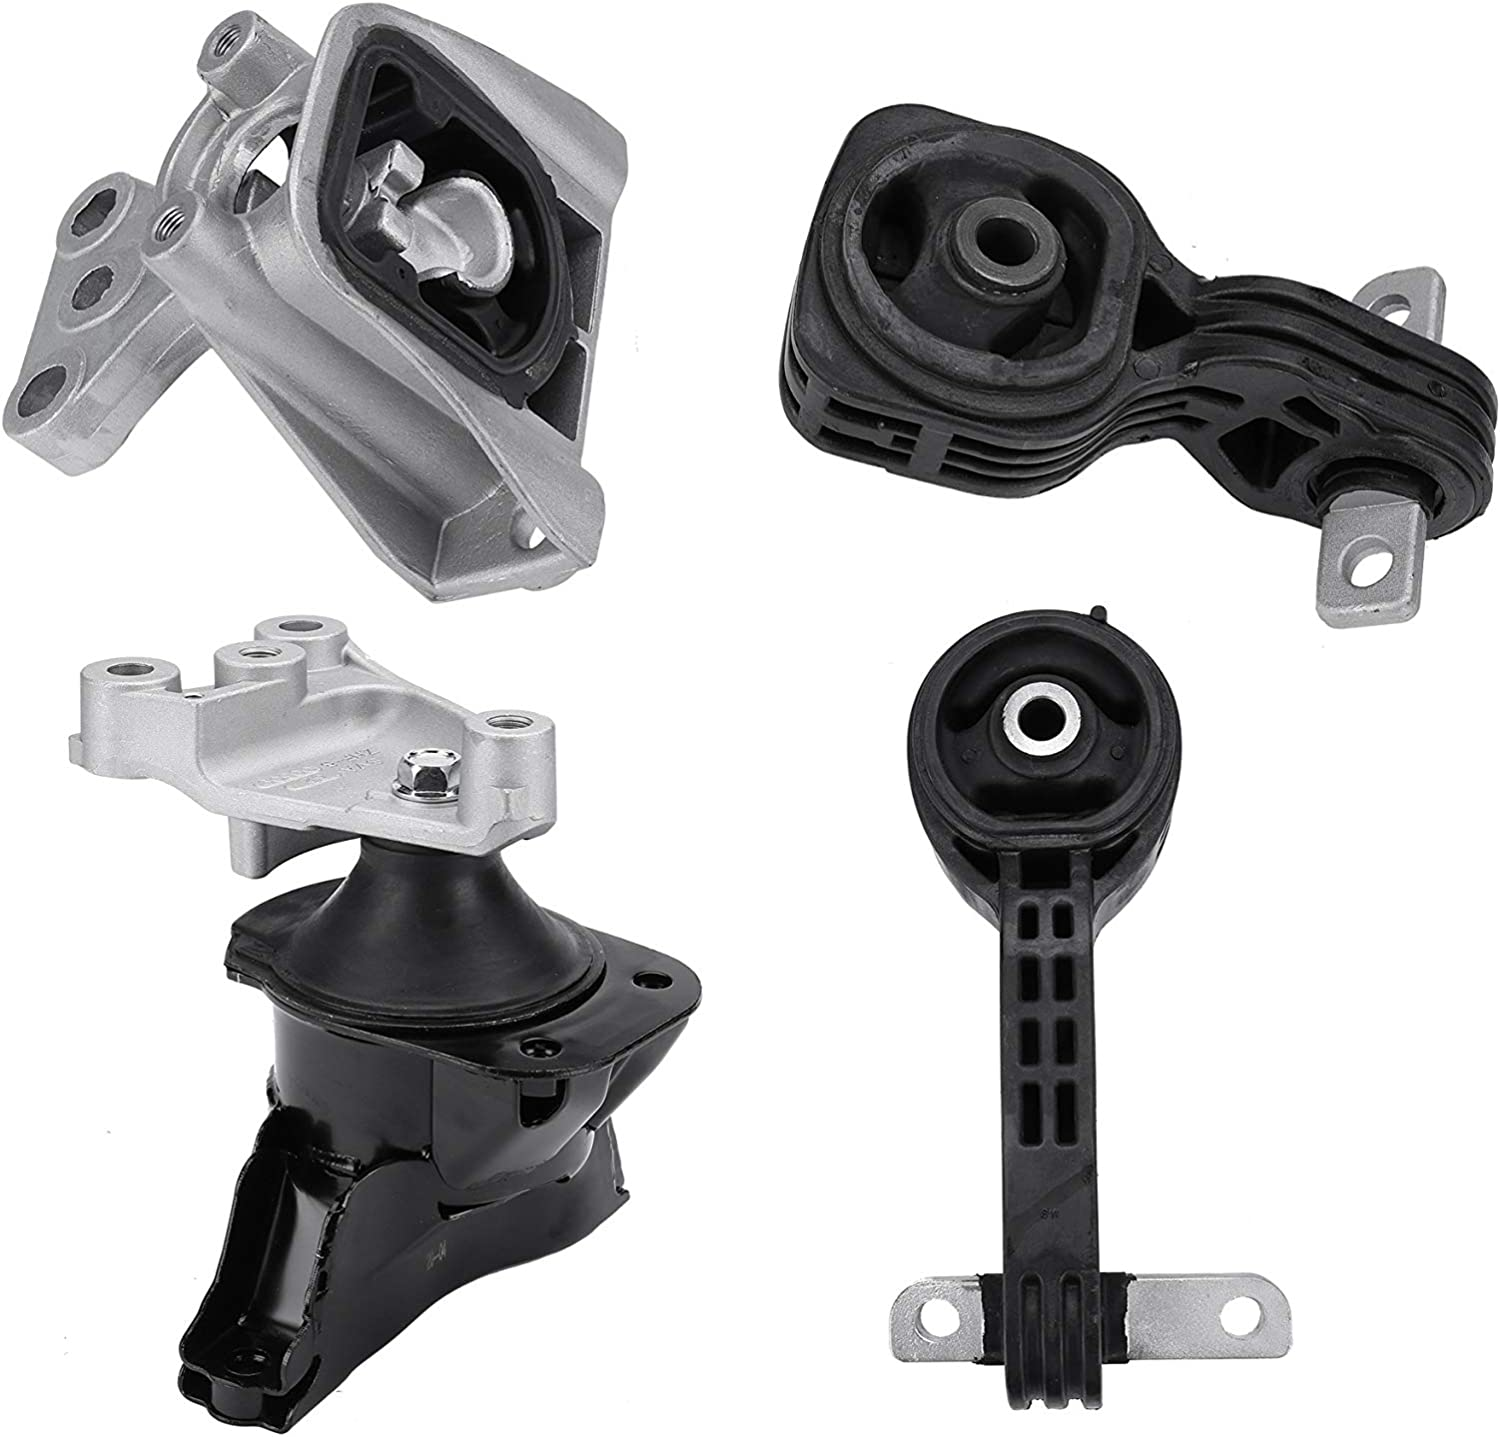 A4546 Engine and Transmission Mount Set of 4 Replaces 50850-SNA-A81 50820-SNA-023 A4543 50890-SNA-A81 50880-SNA-A81 Fits Honda Civic 2006-2010 1.8L with Automatic Trans A4530 A4534